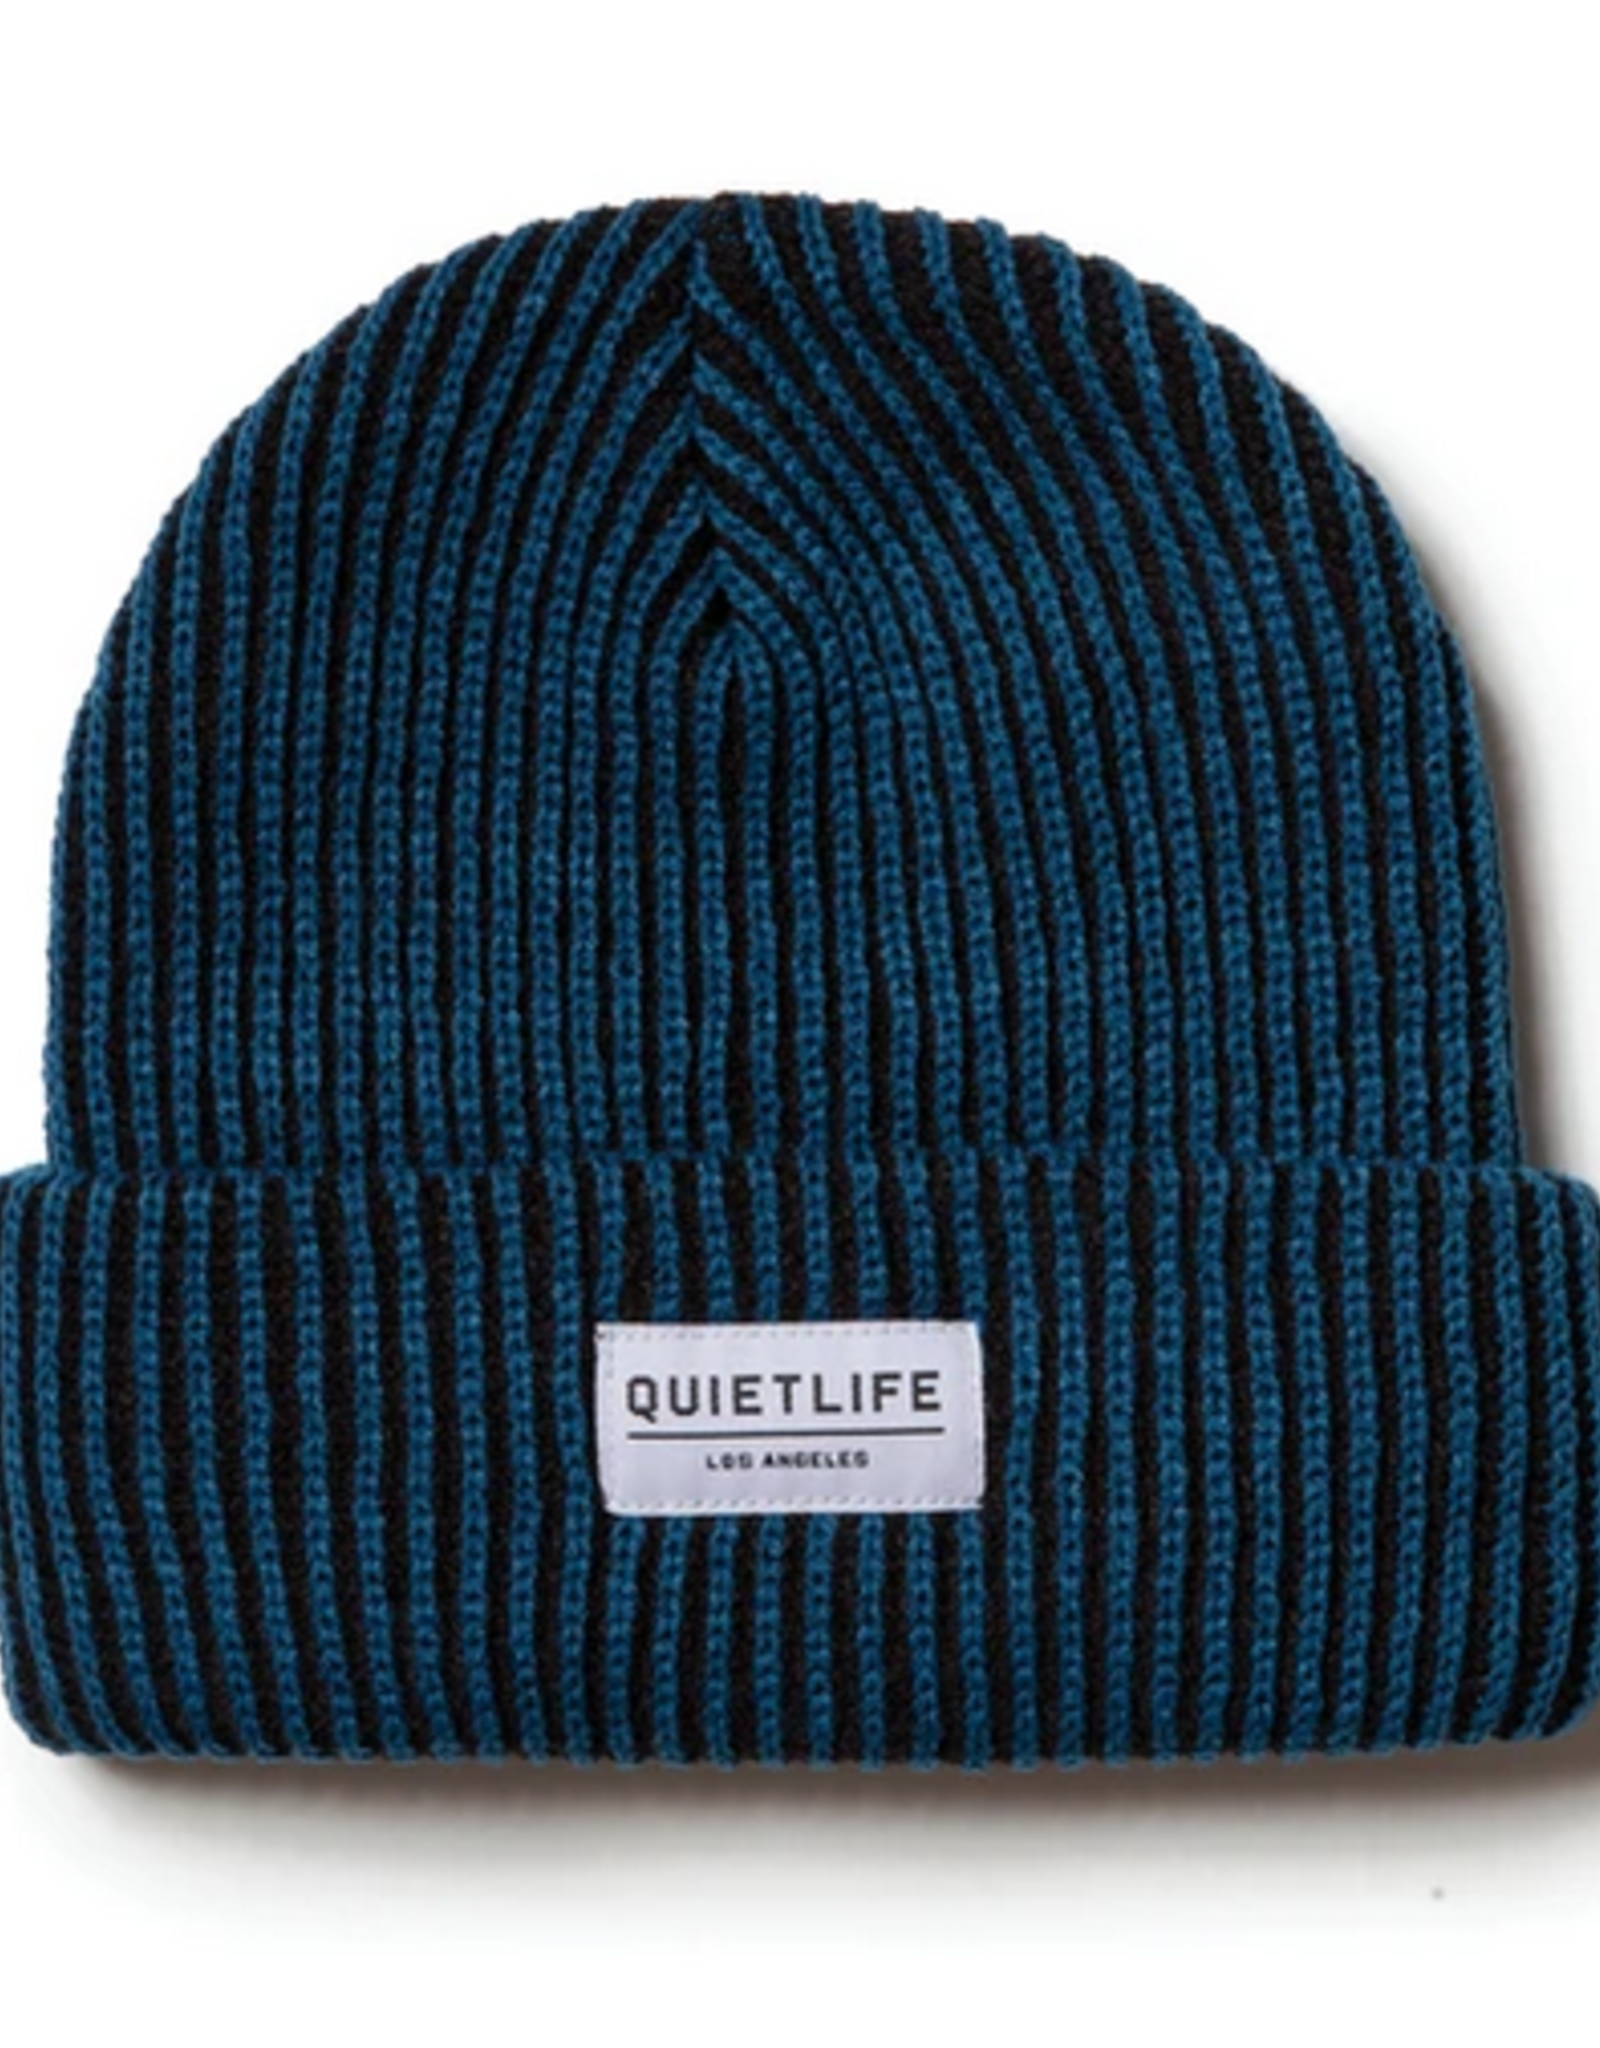 THE QUIET LIFE THE QUIET LIFE VERTICAL BEANIE BLUE